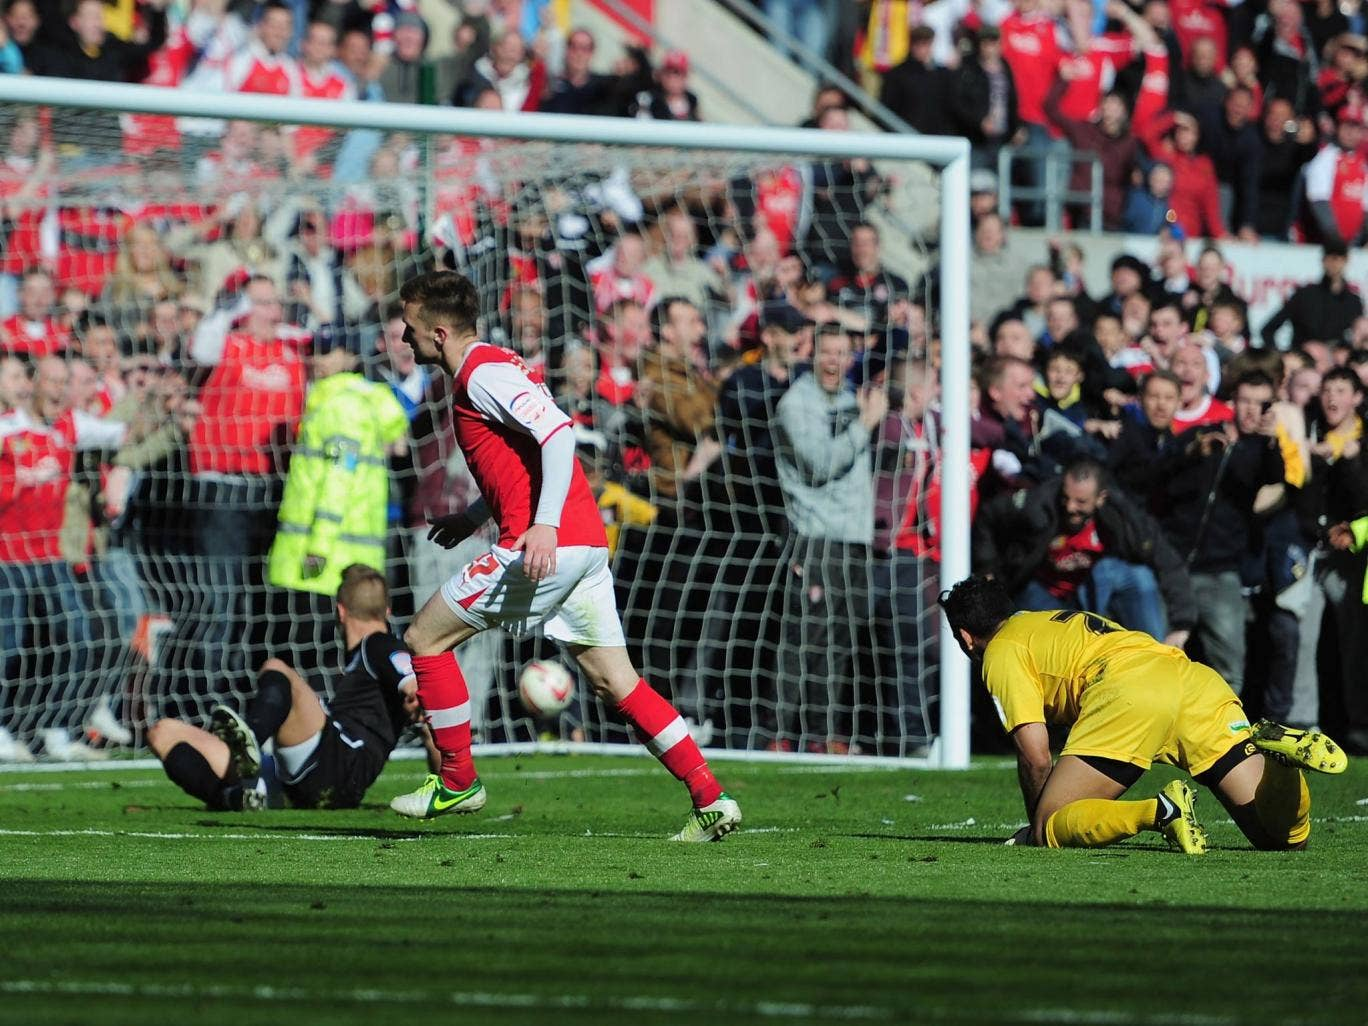 Lee Frecklington of Rotherham United scores a goal during the npower League Two match against Aldershot Town